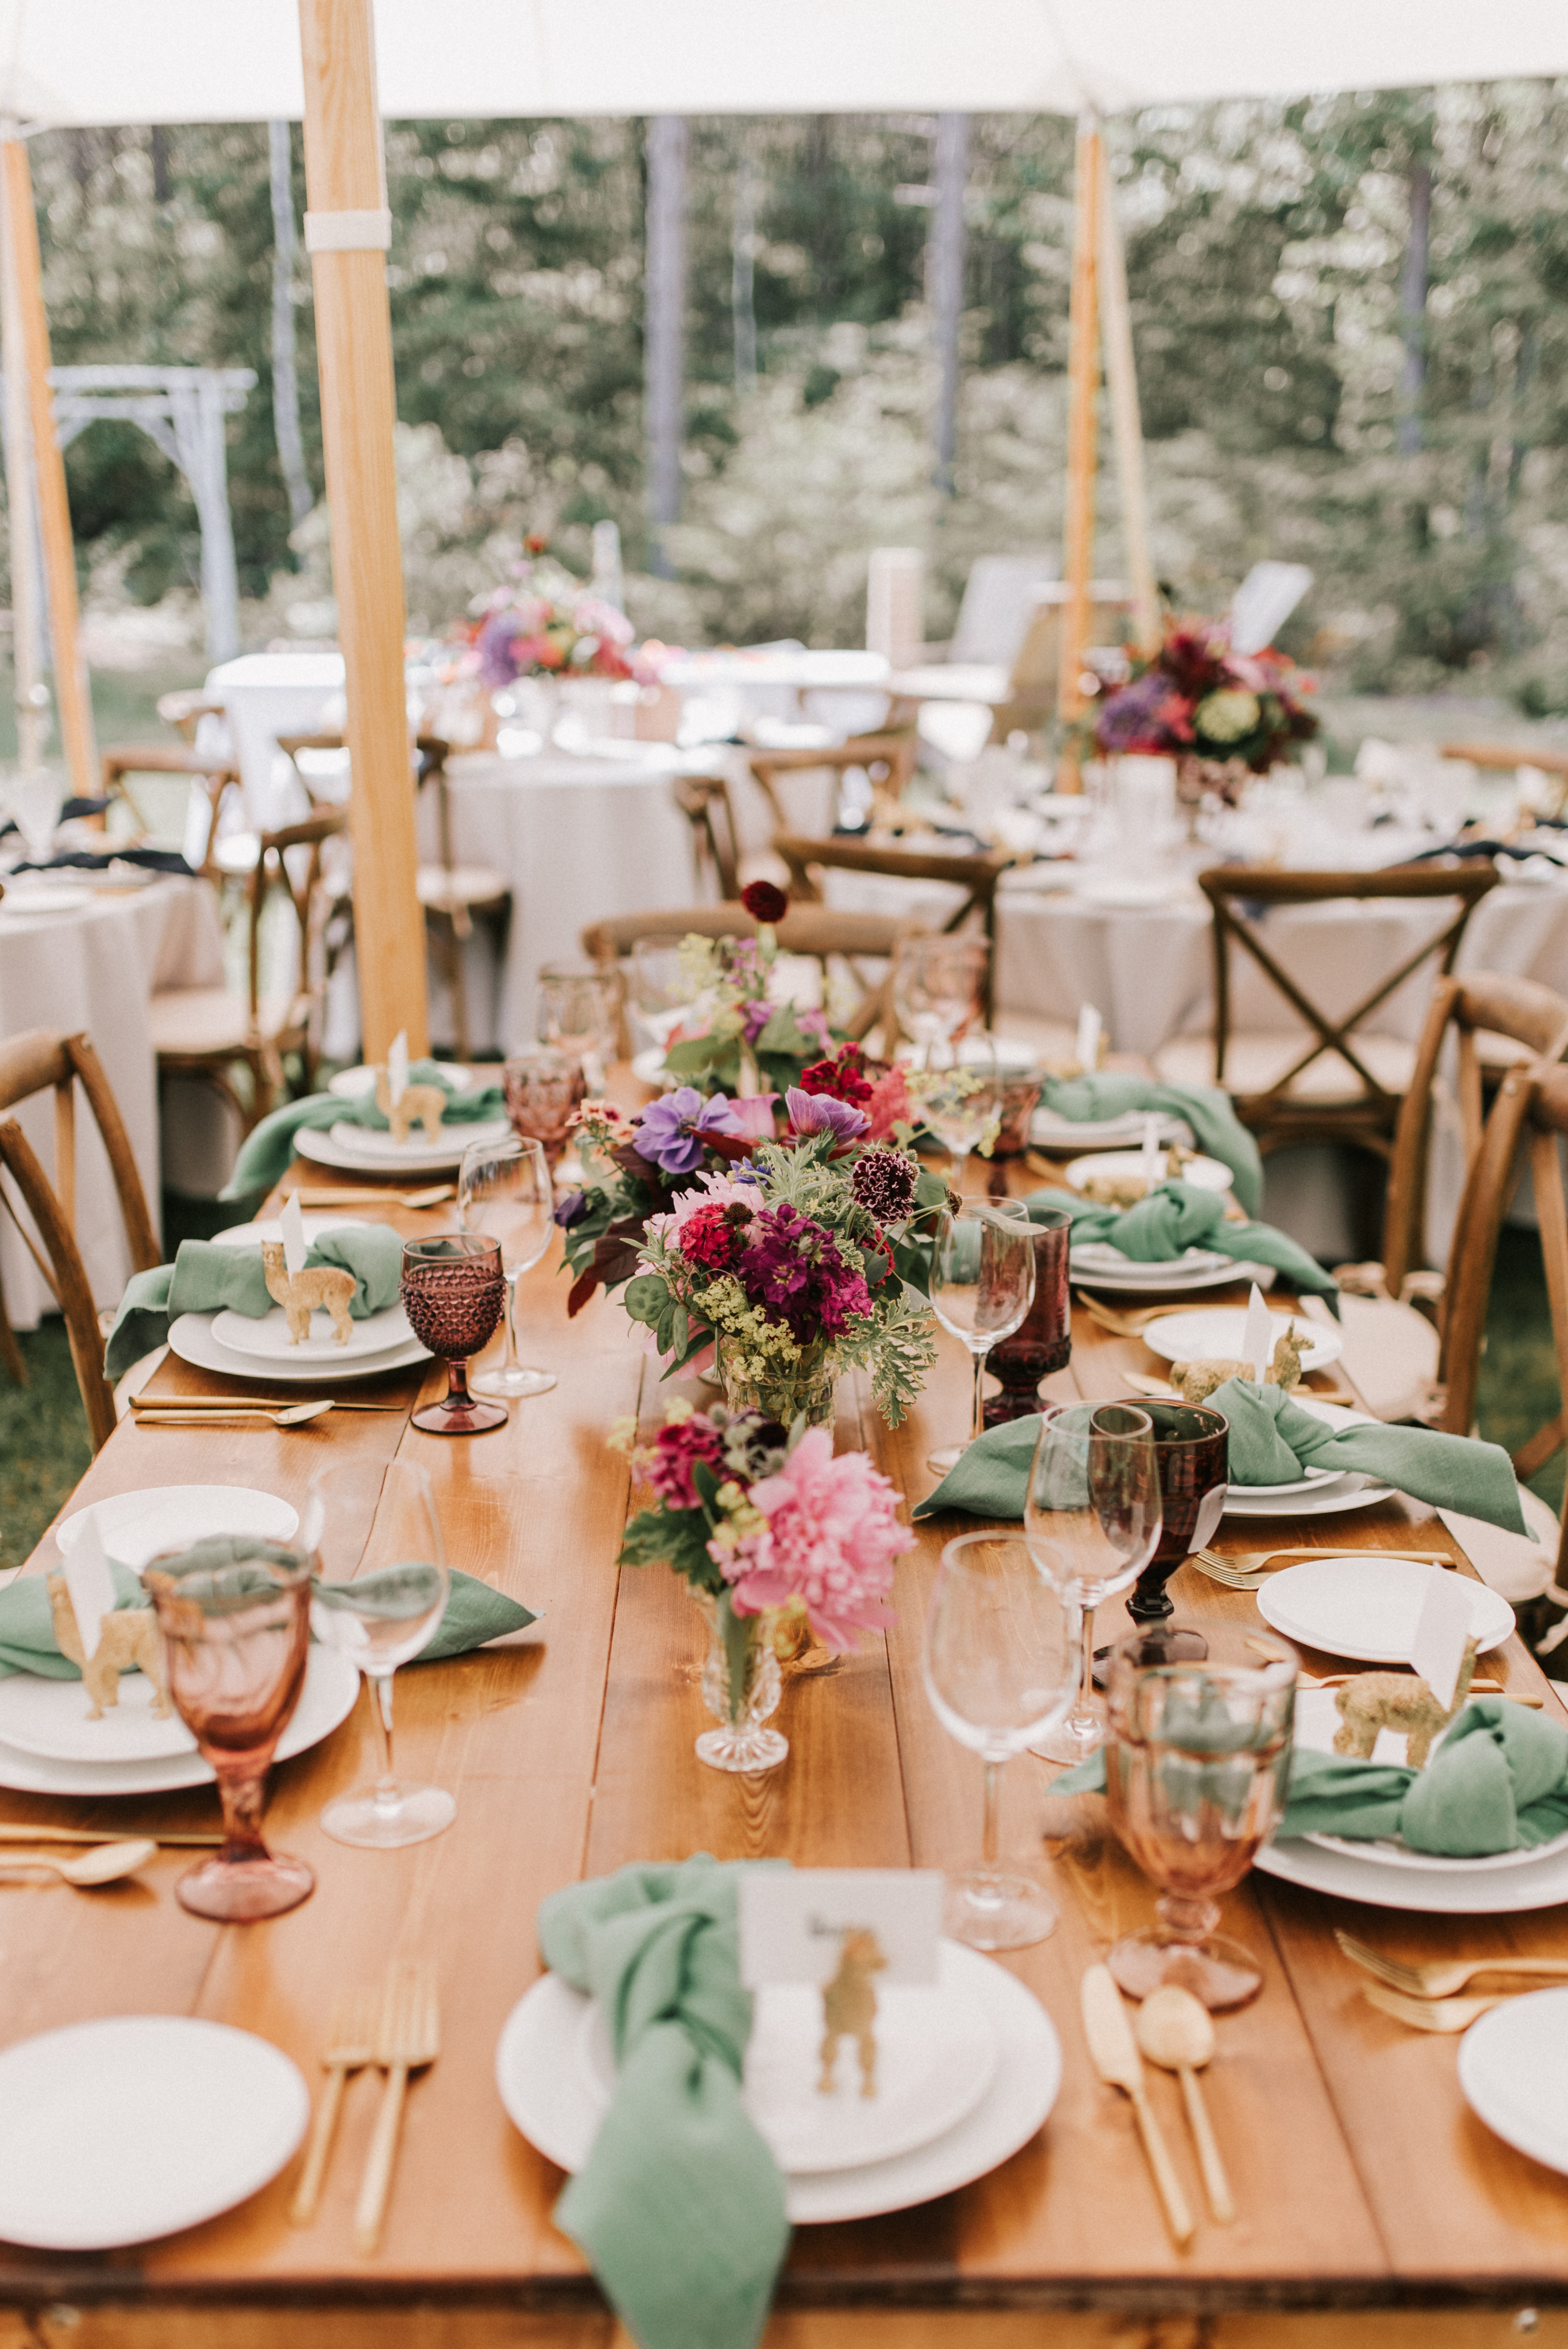 Tablescape at Hidden Pond wedding in Kennebunkport, Maine